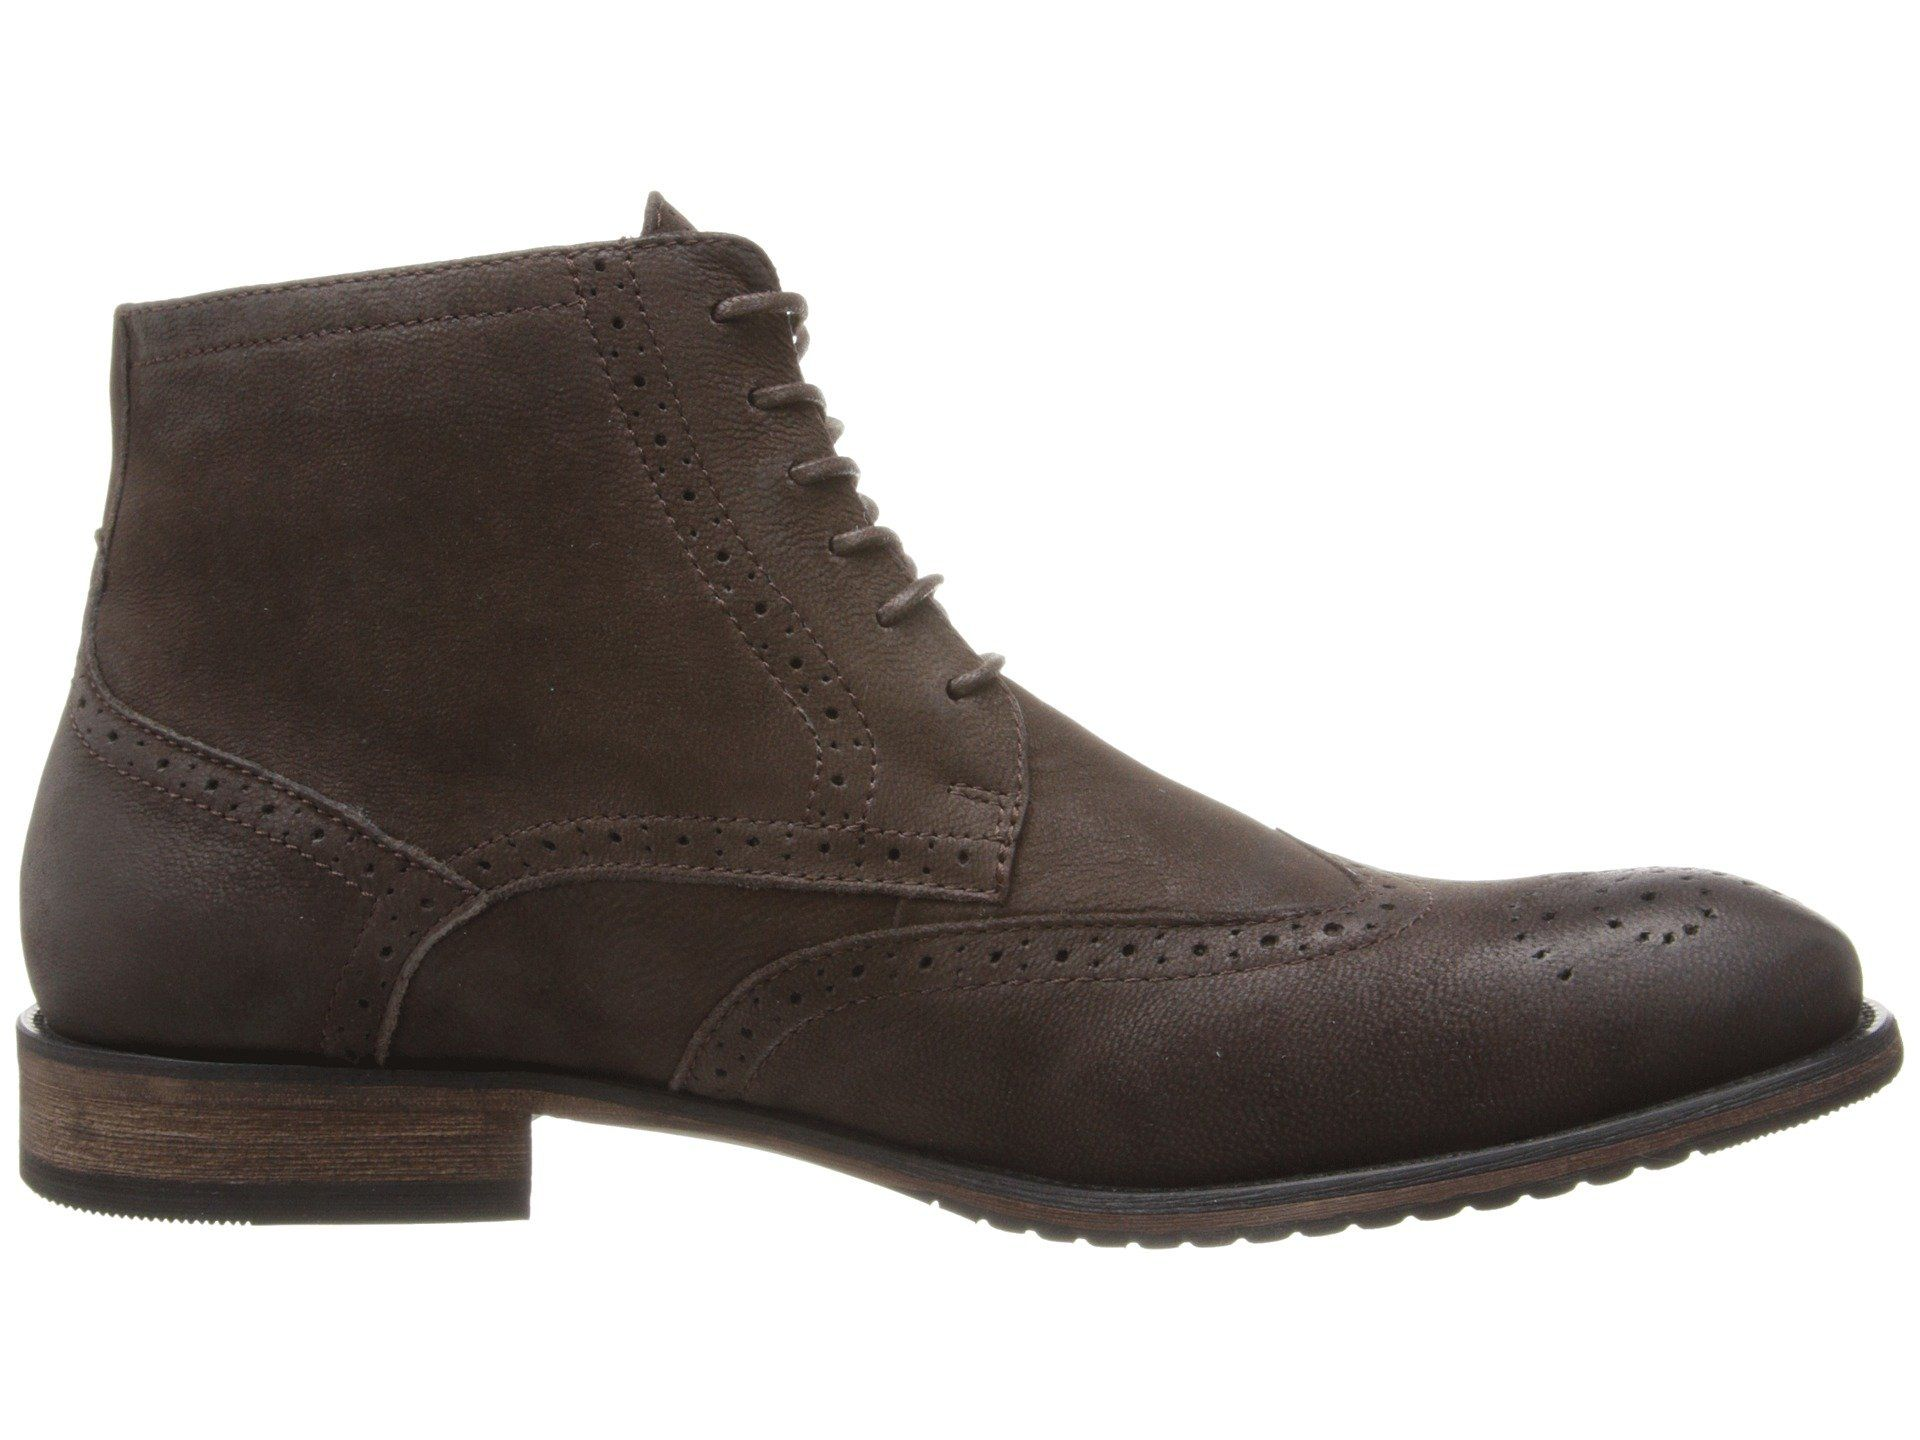 footgift bottine homme brogue marron en daim avec lacets bout rond